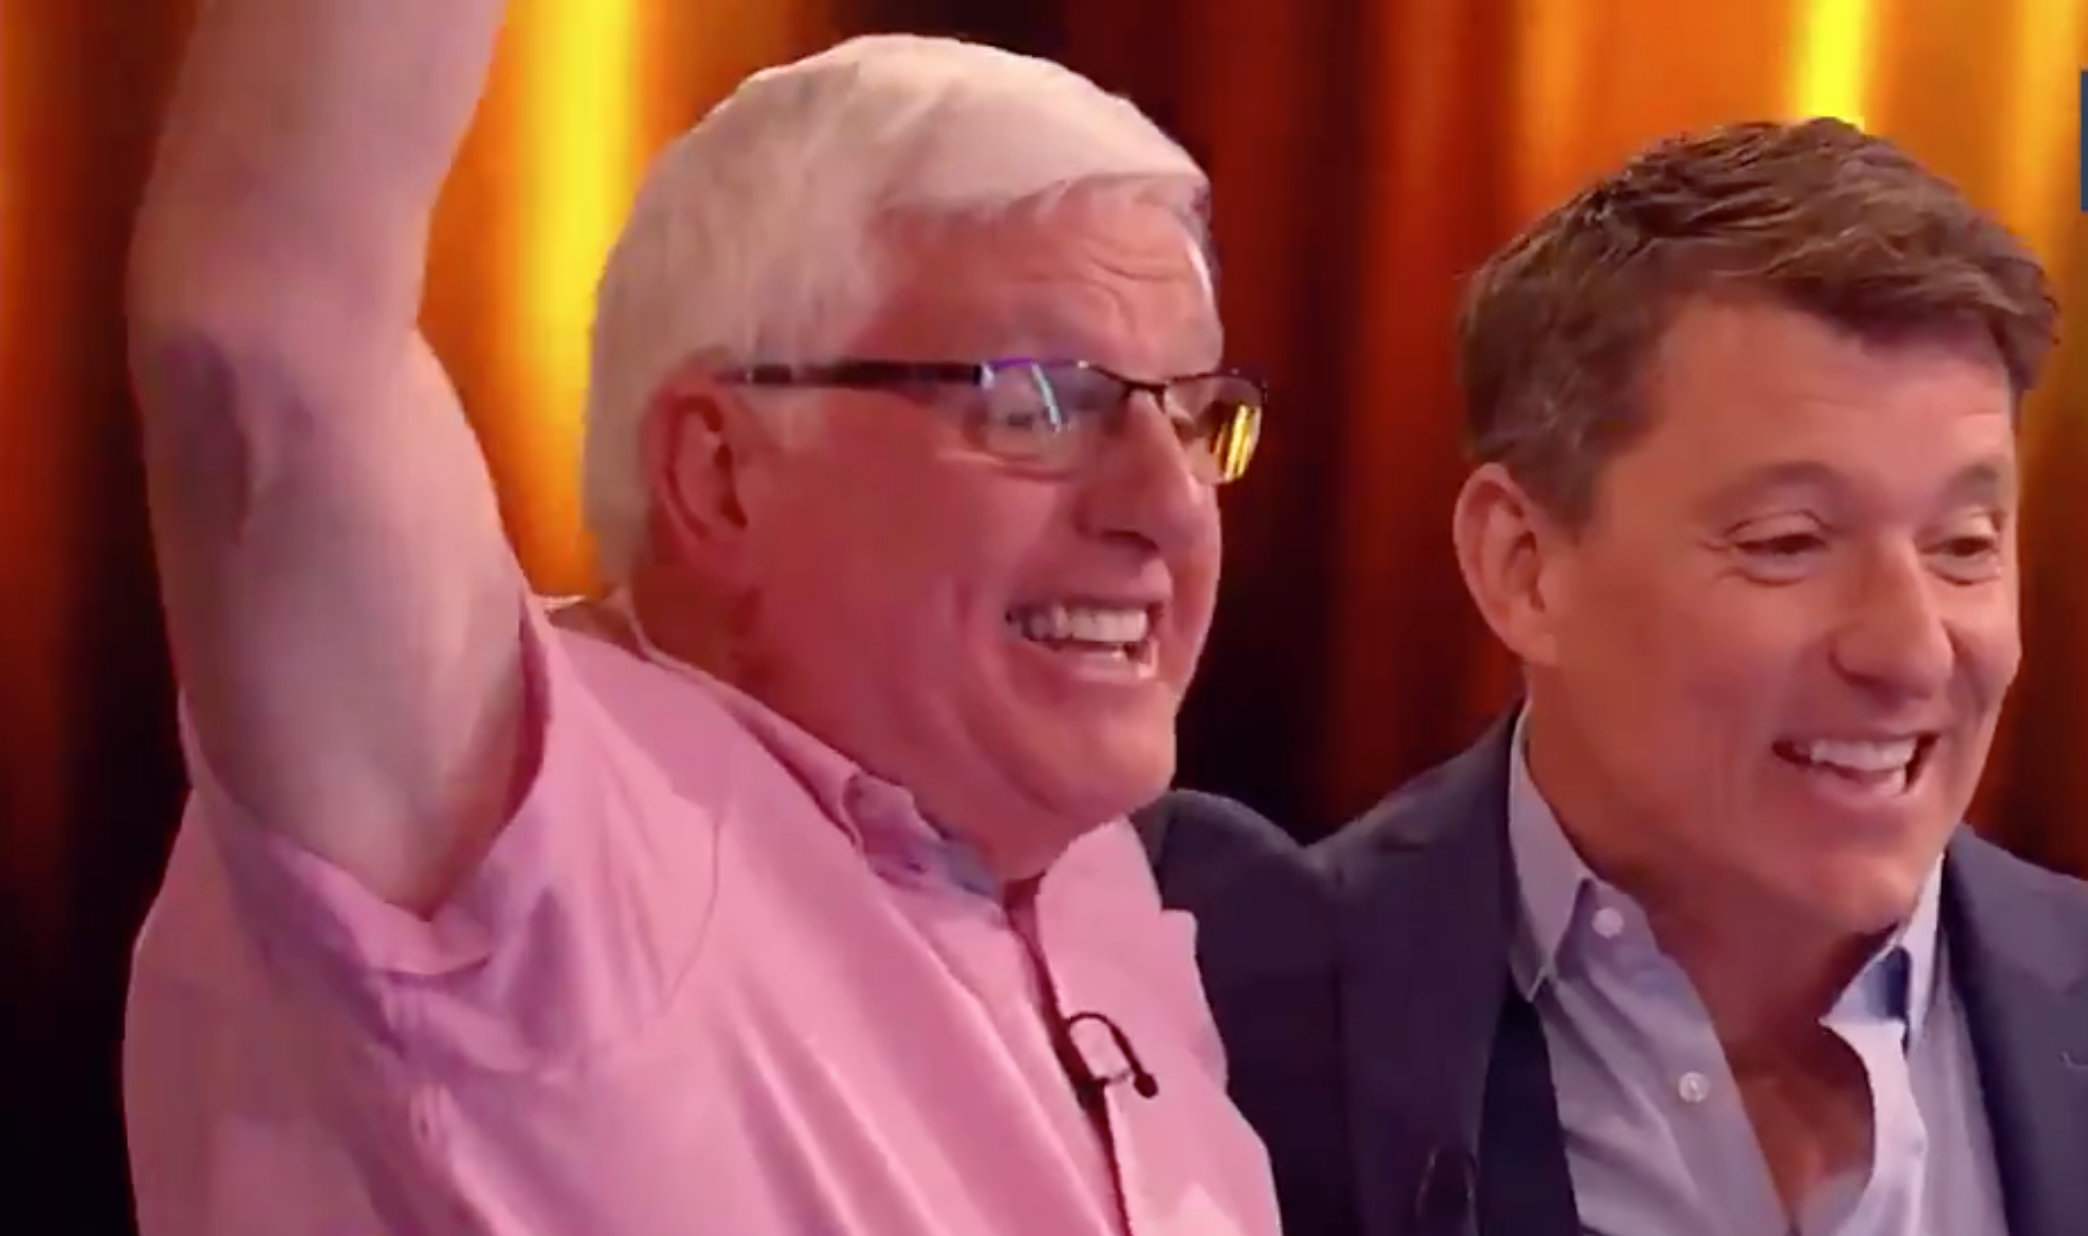 Tipping Point viewers stunned as contestant makes history by winning first double jackpot